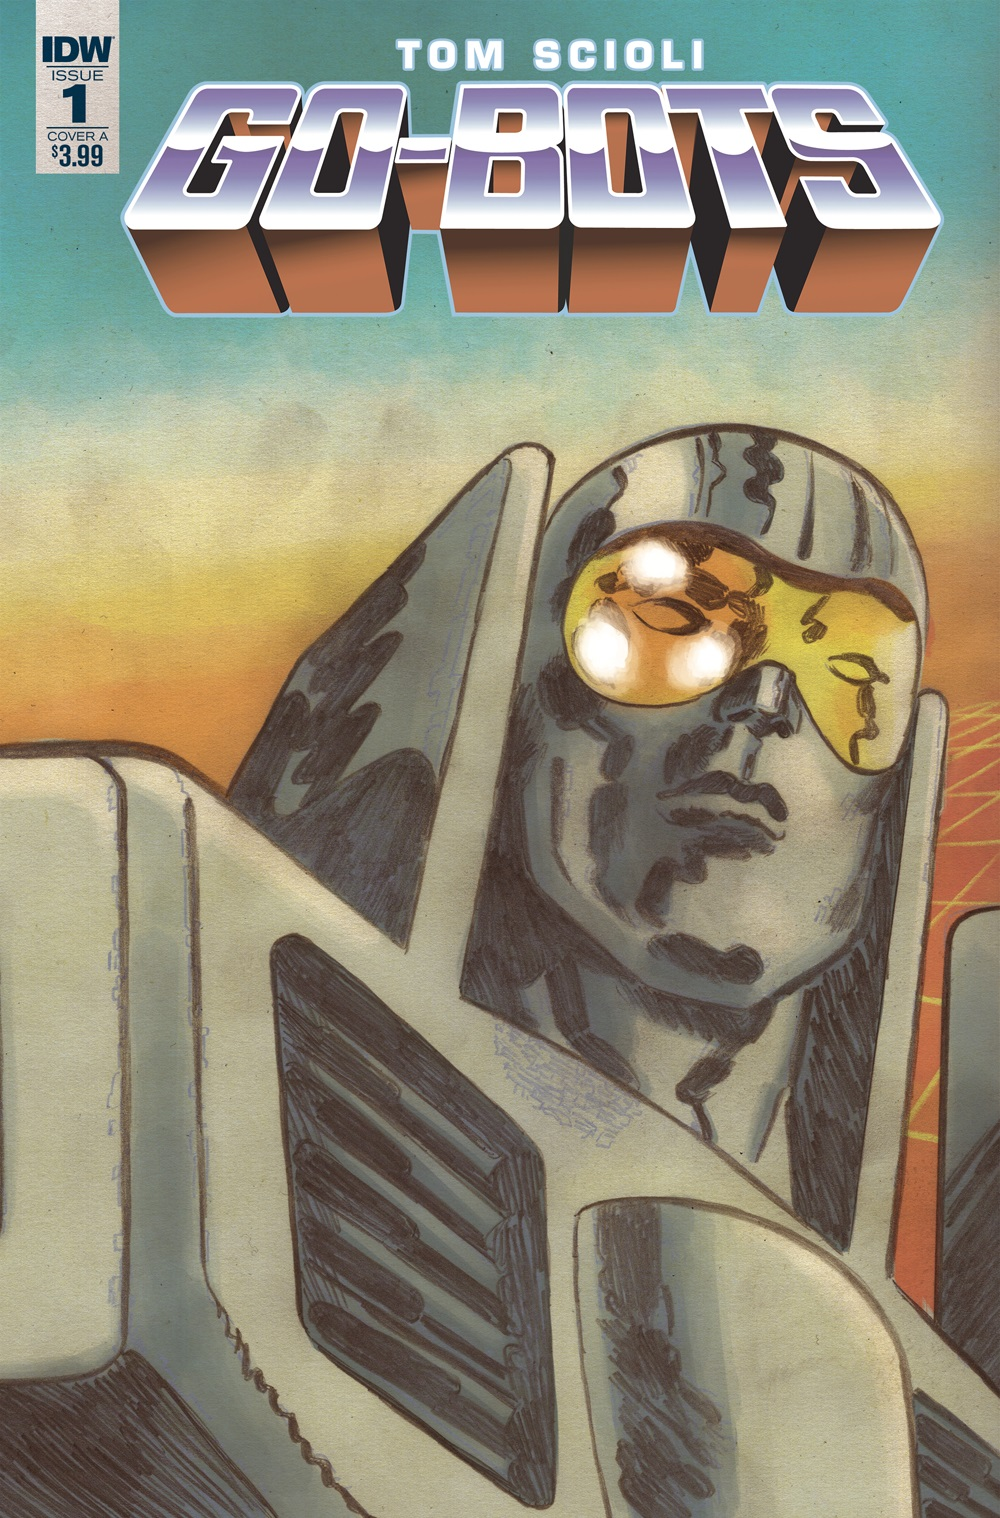 go-bots issue 1